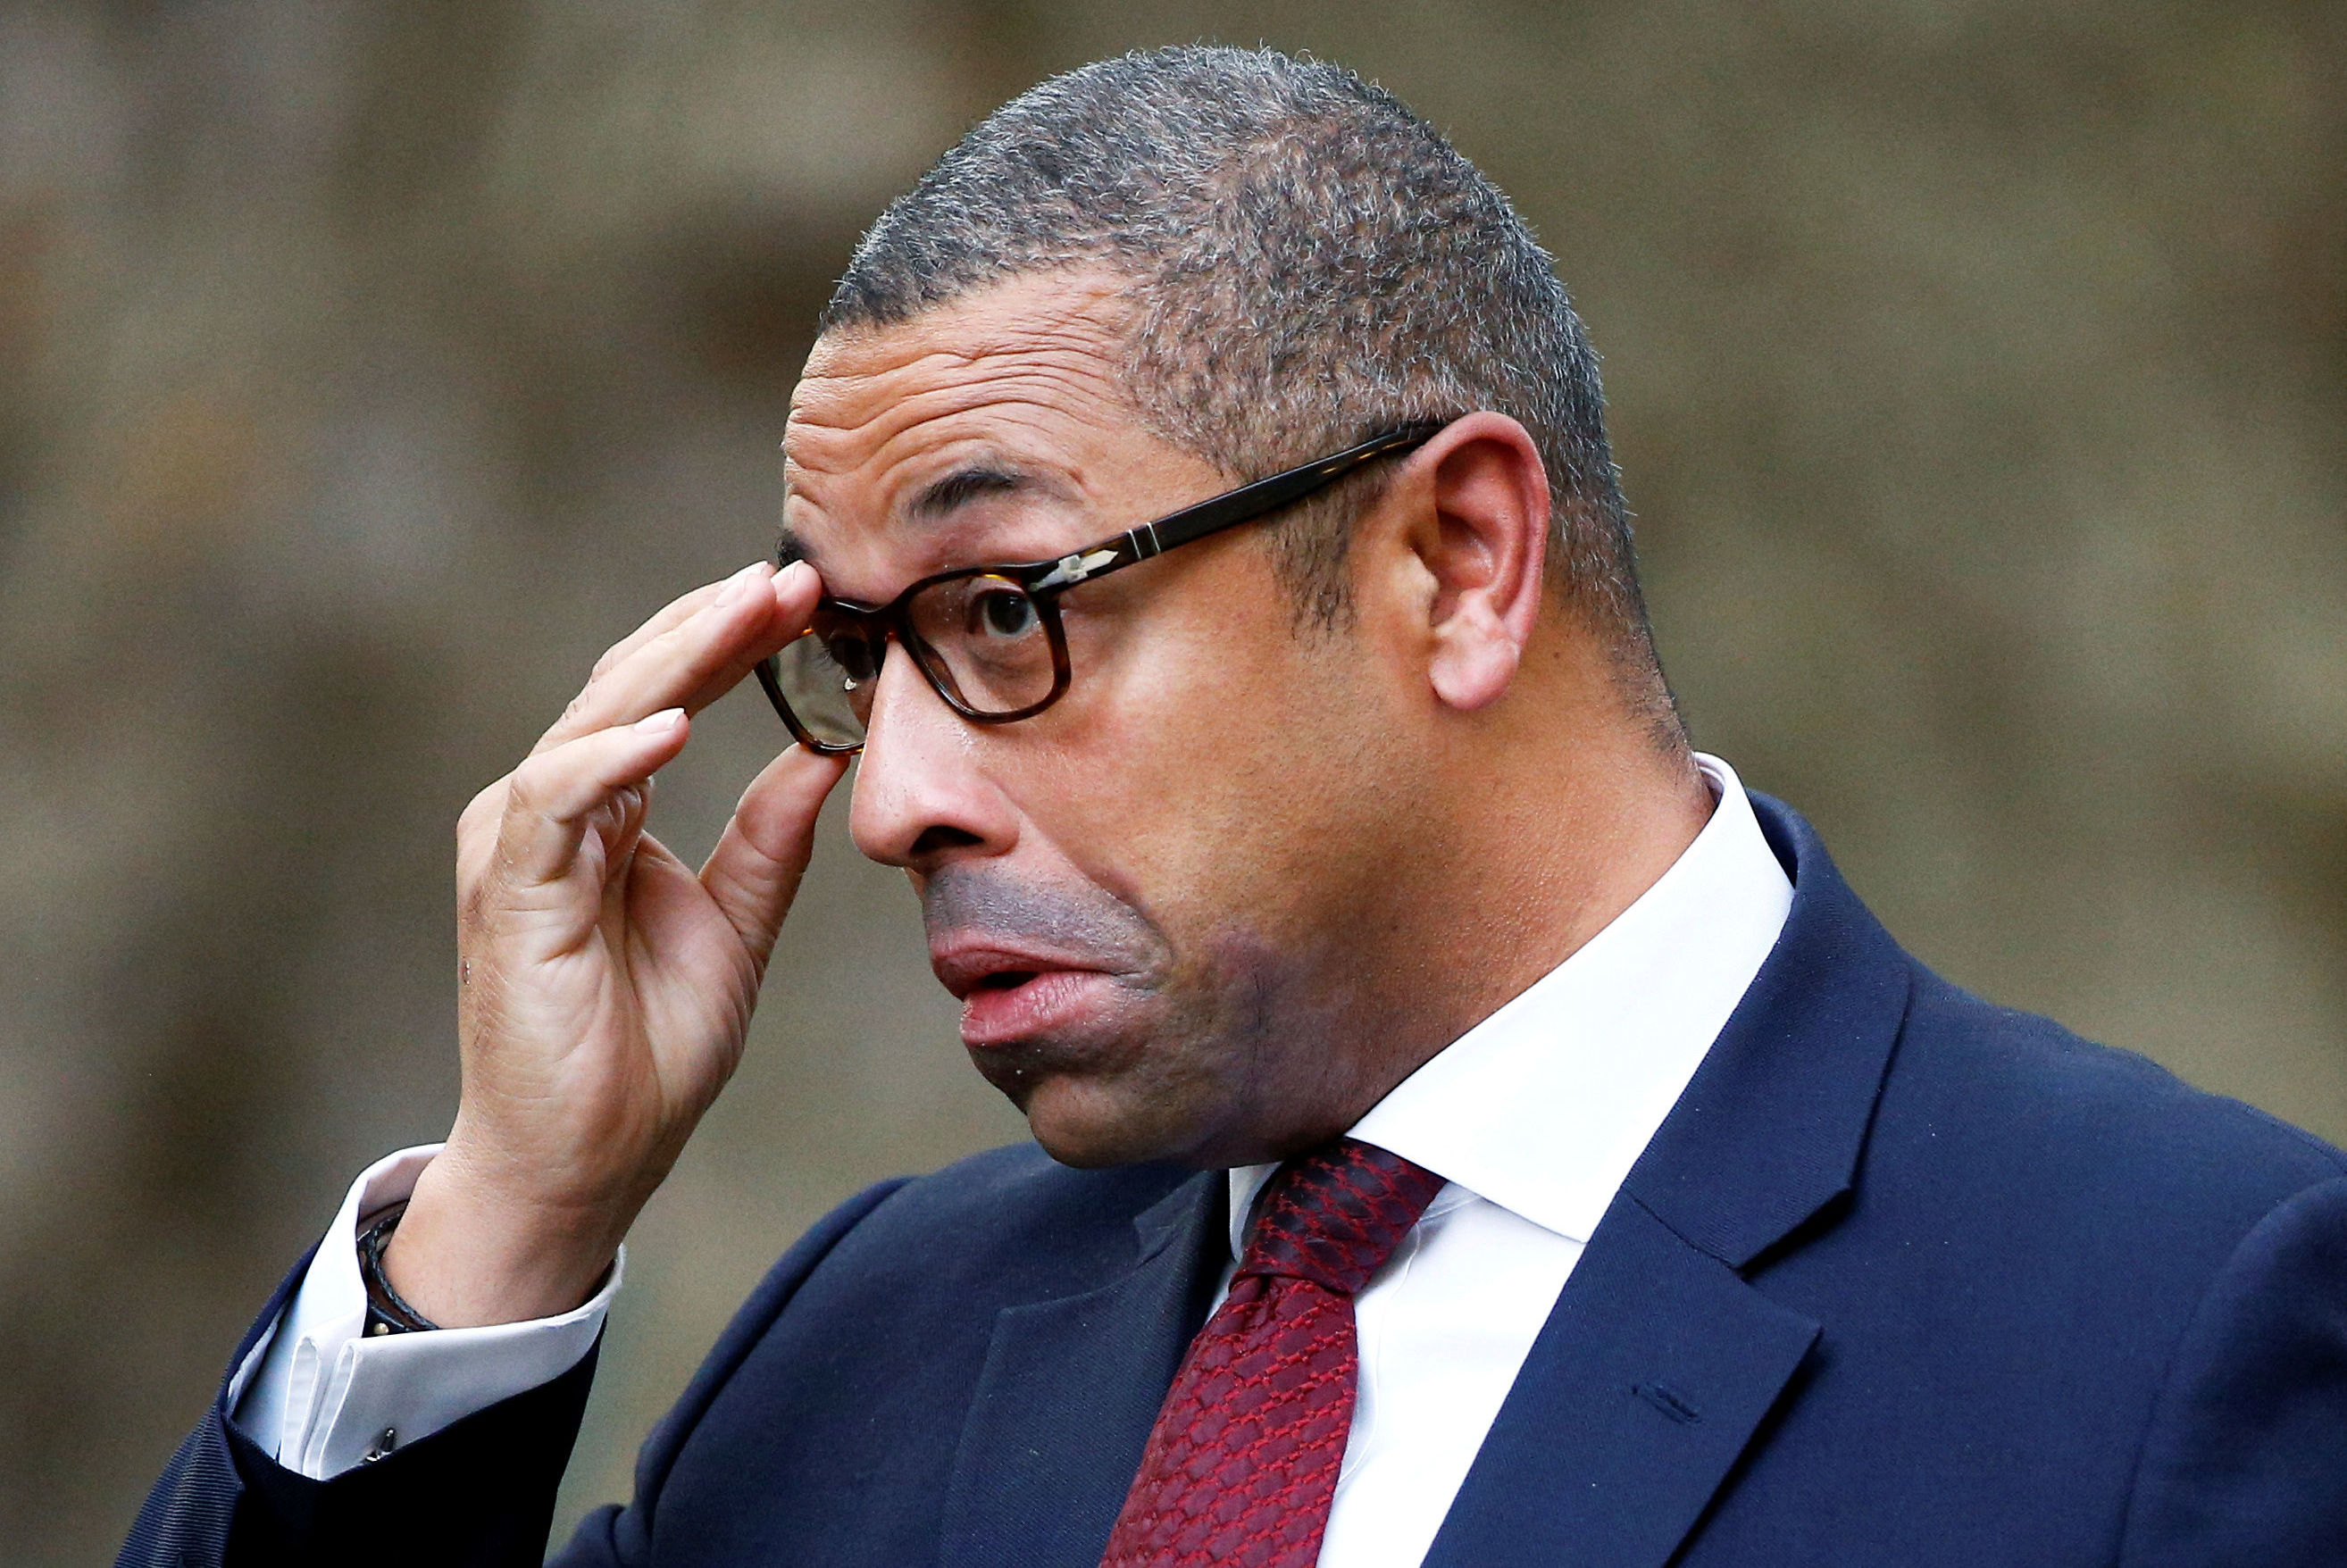 Britain's Conservative Party Chairman James Cleverly is seen outside Downing Street in London, Britain, October 16, 2019